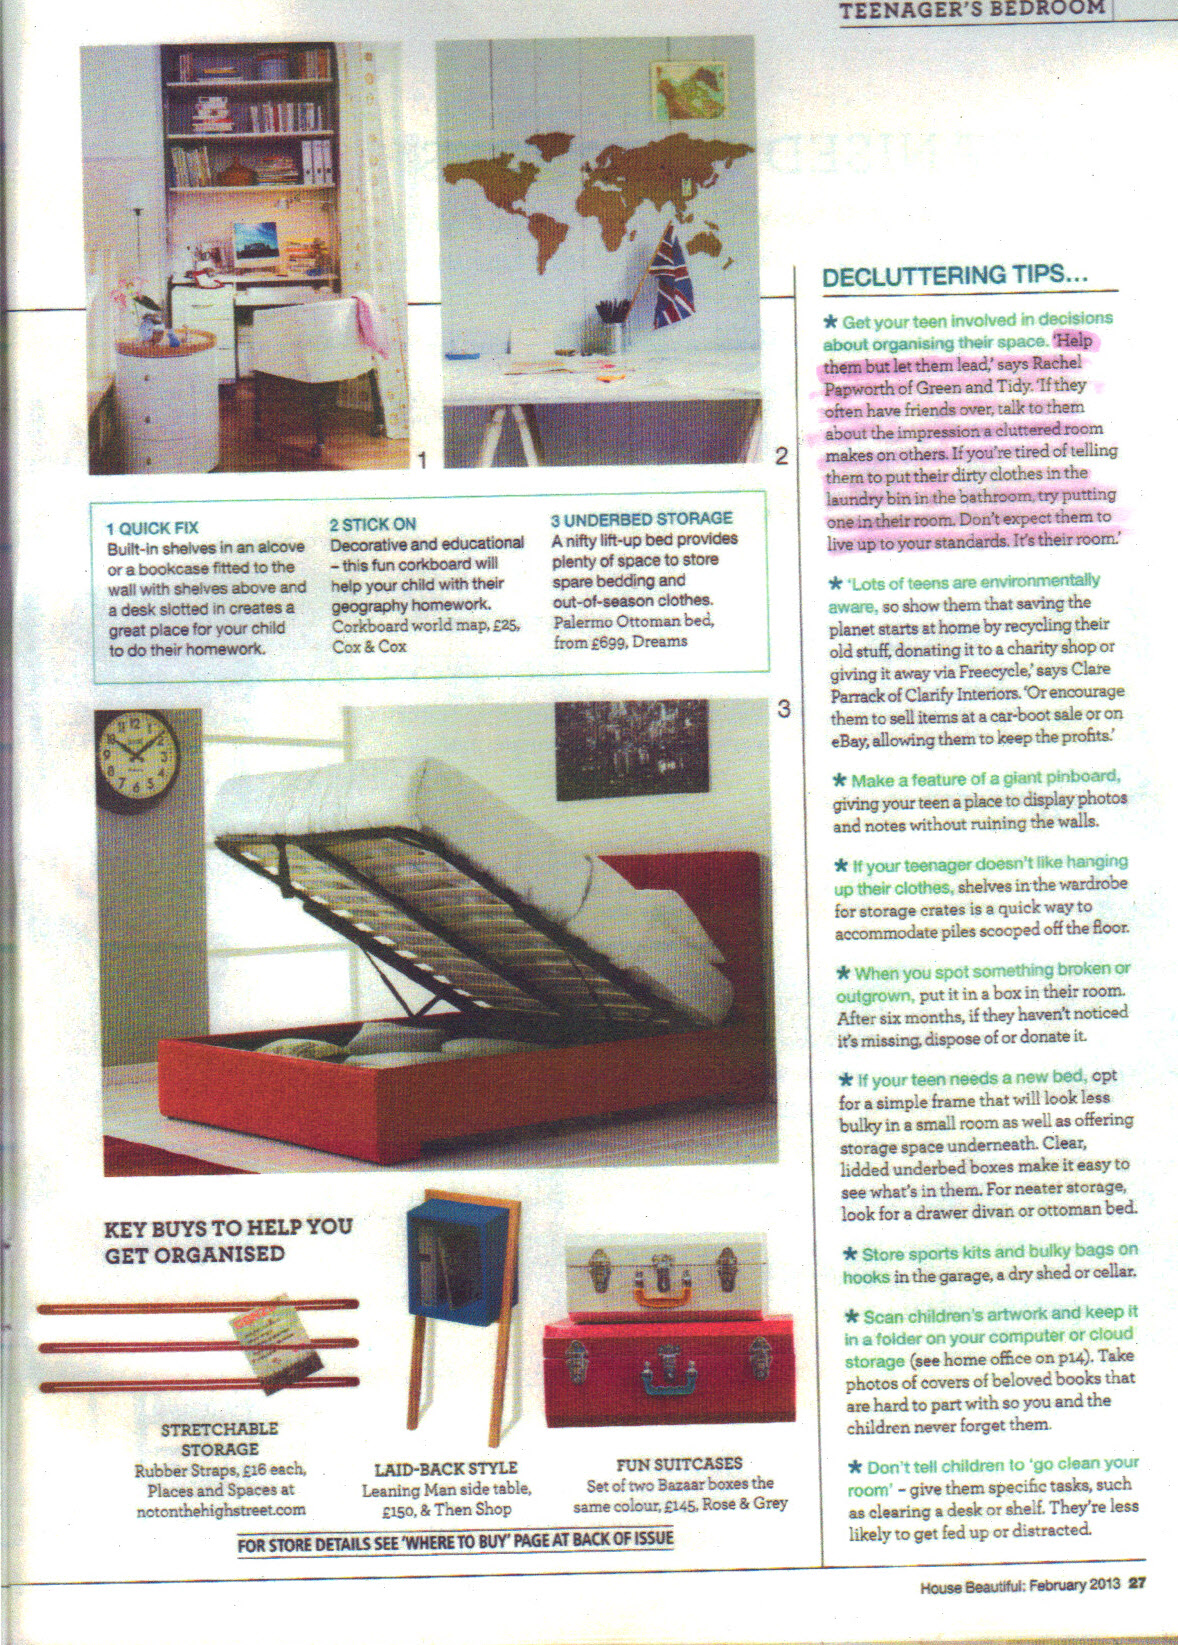 House Beautiful Feb 2013 p27 -  highlight